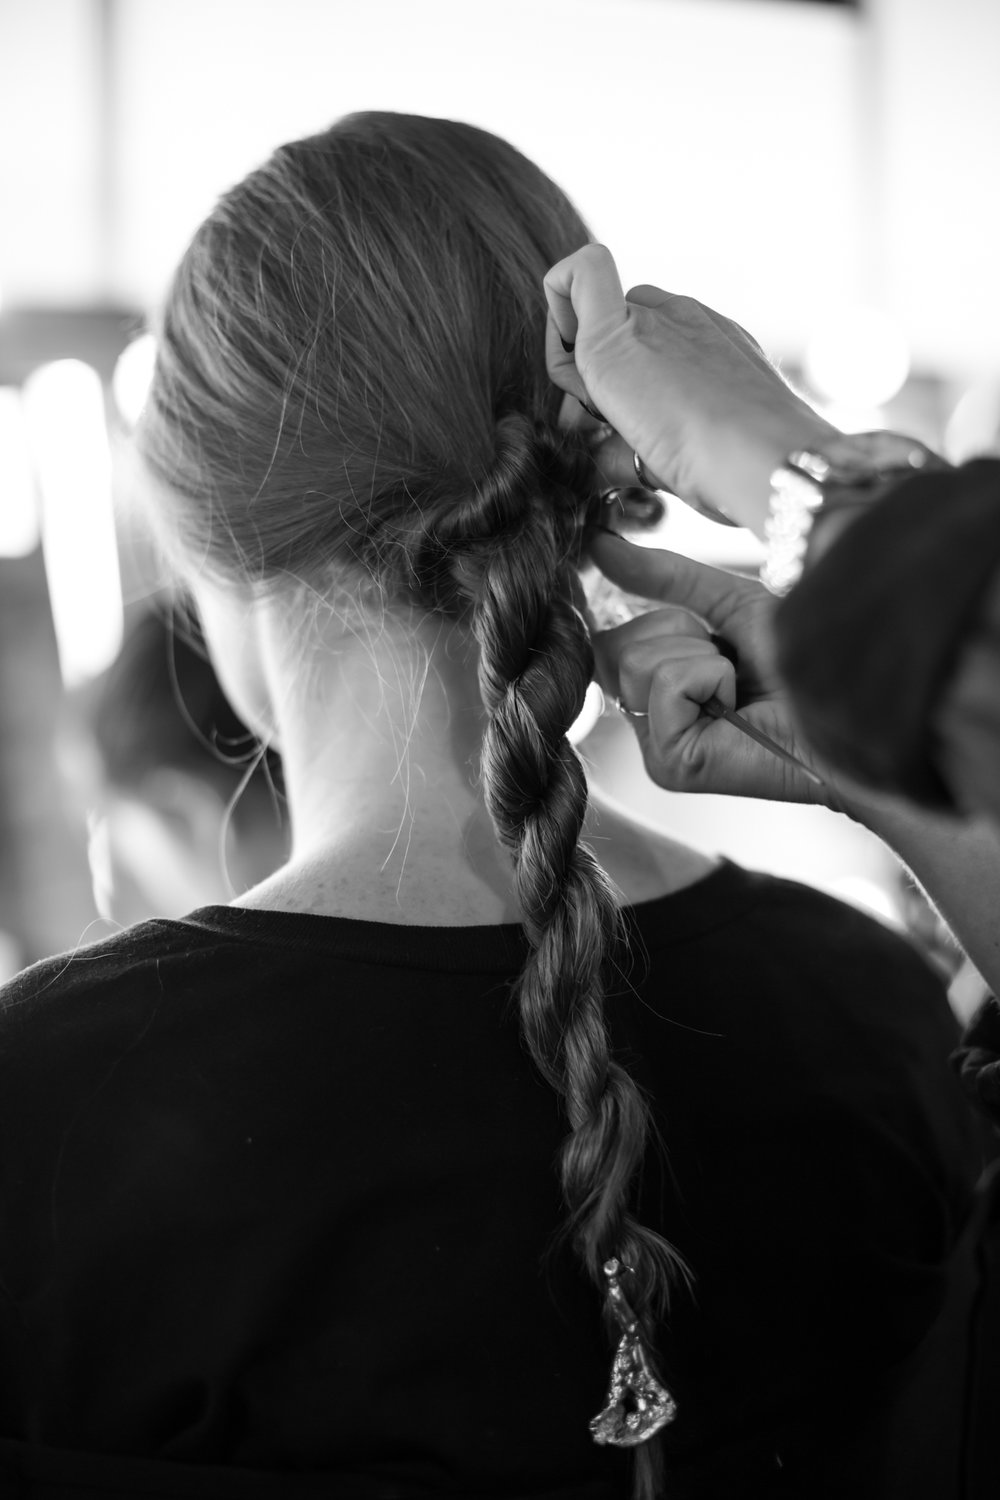 17.05.17_OZDARE_KEVIN.MURPHY_MBFW_ANNA QUAN 4.jpg